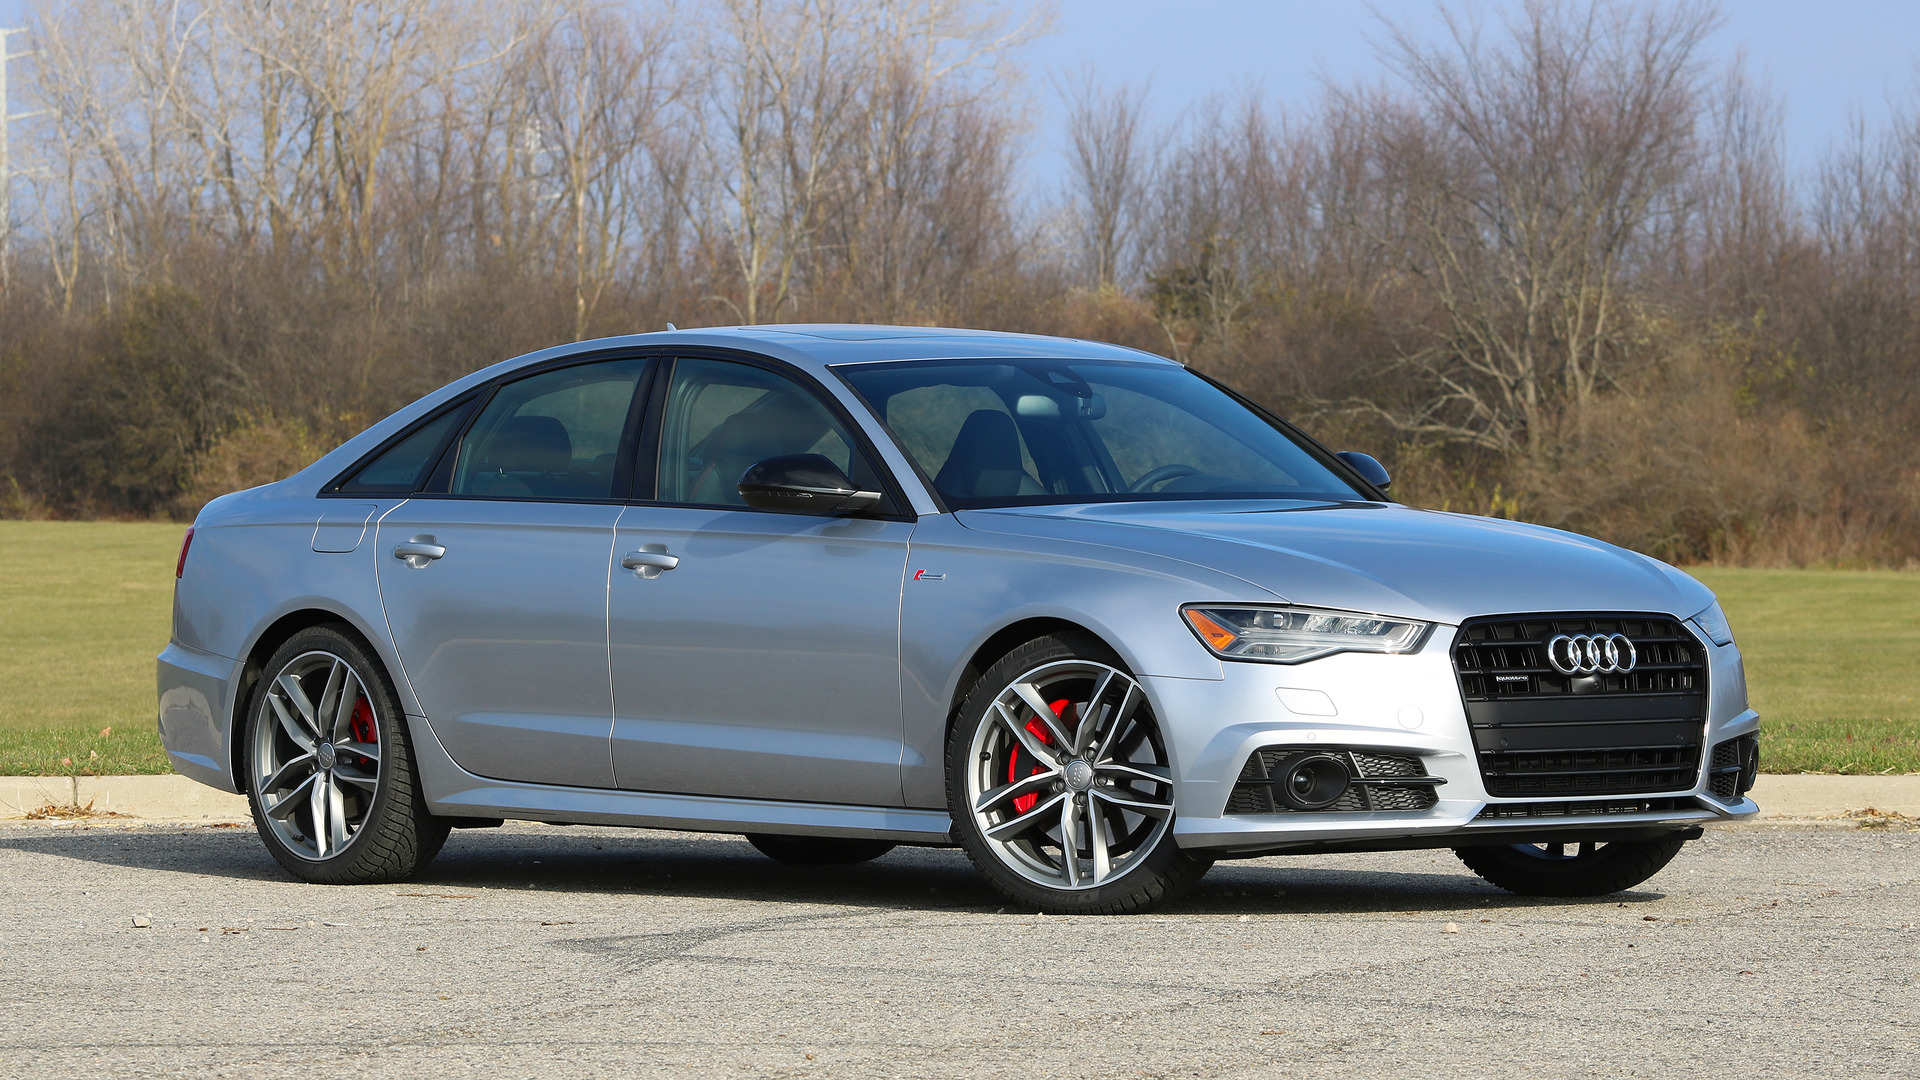 audi en guide sale thrilling car articles for the within wheels reason